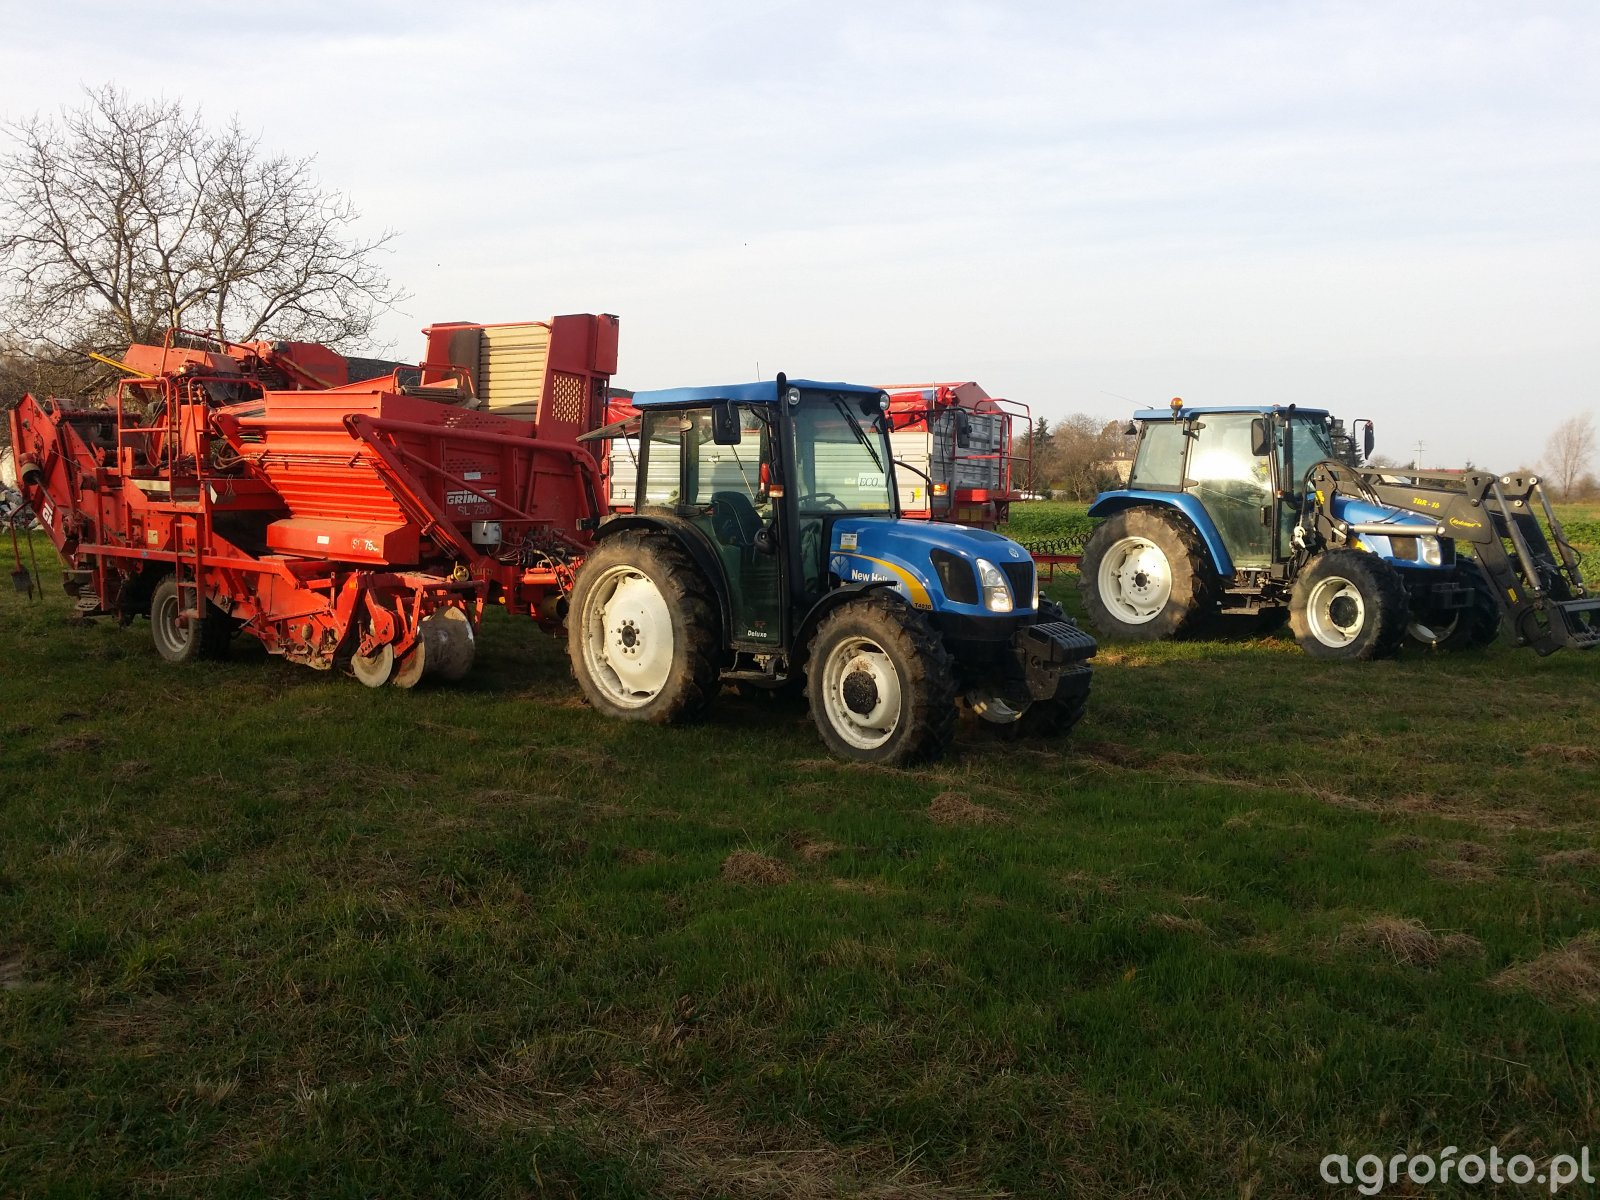 New Holland T4030 + Grimme SL 750 i New Holland TL90A + Metaltech Eco 10